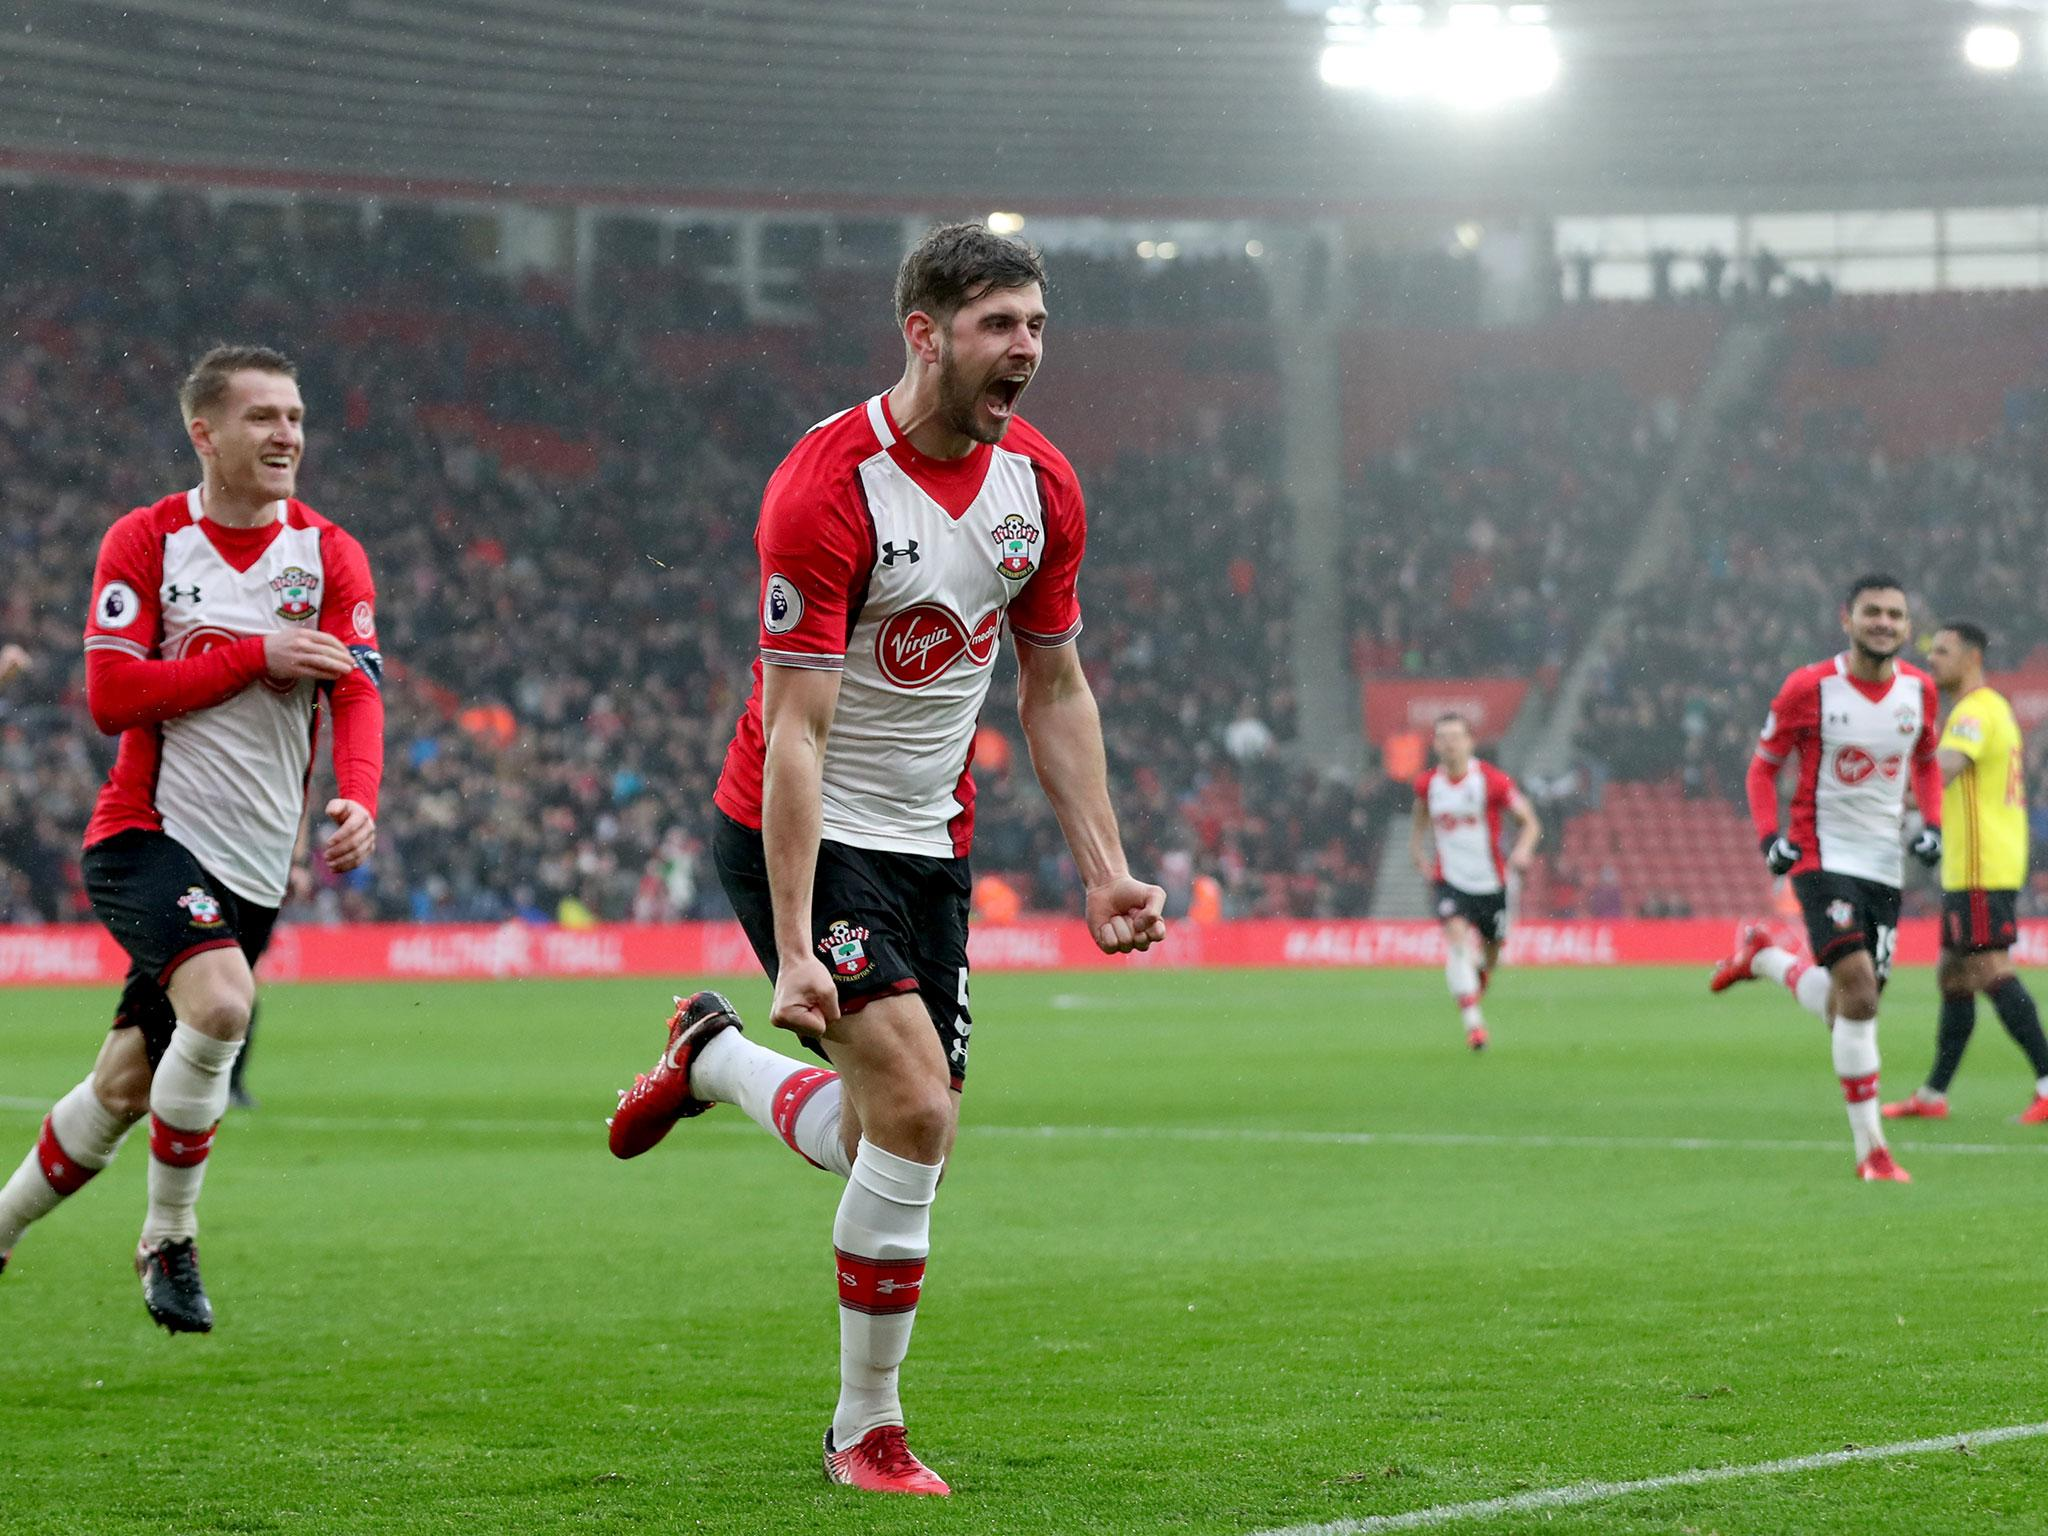 Watford remain stuck in a rut after succumbing to FA Cup defeat at Southampton